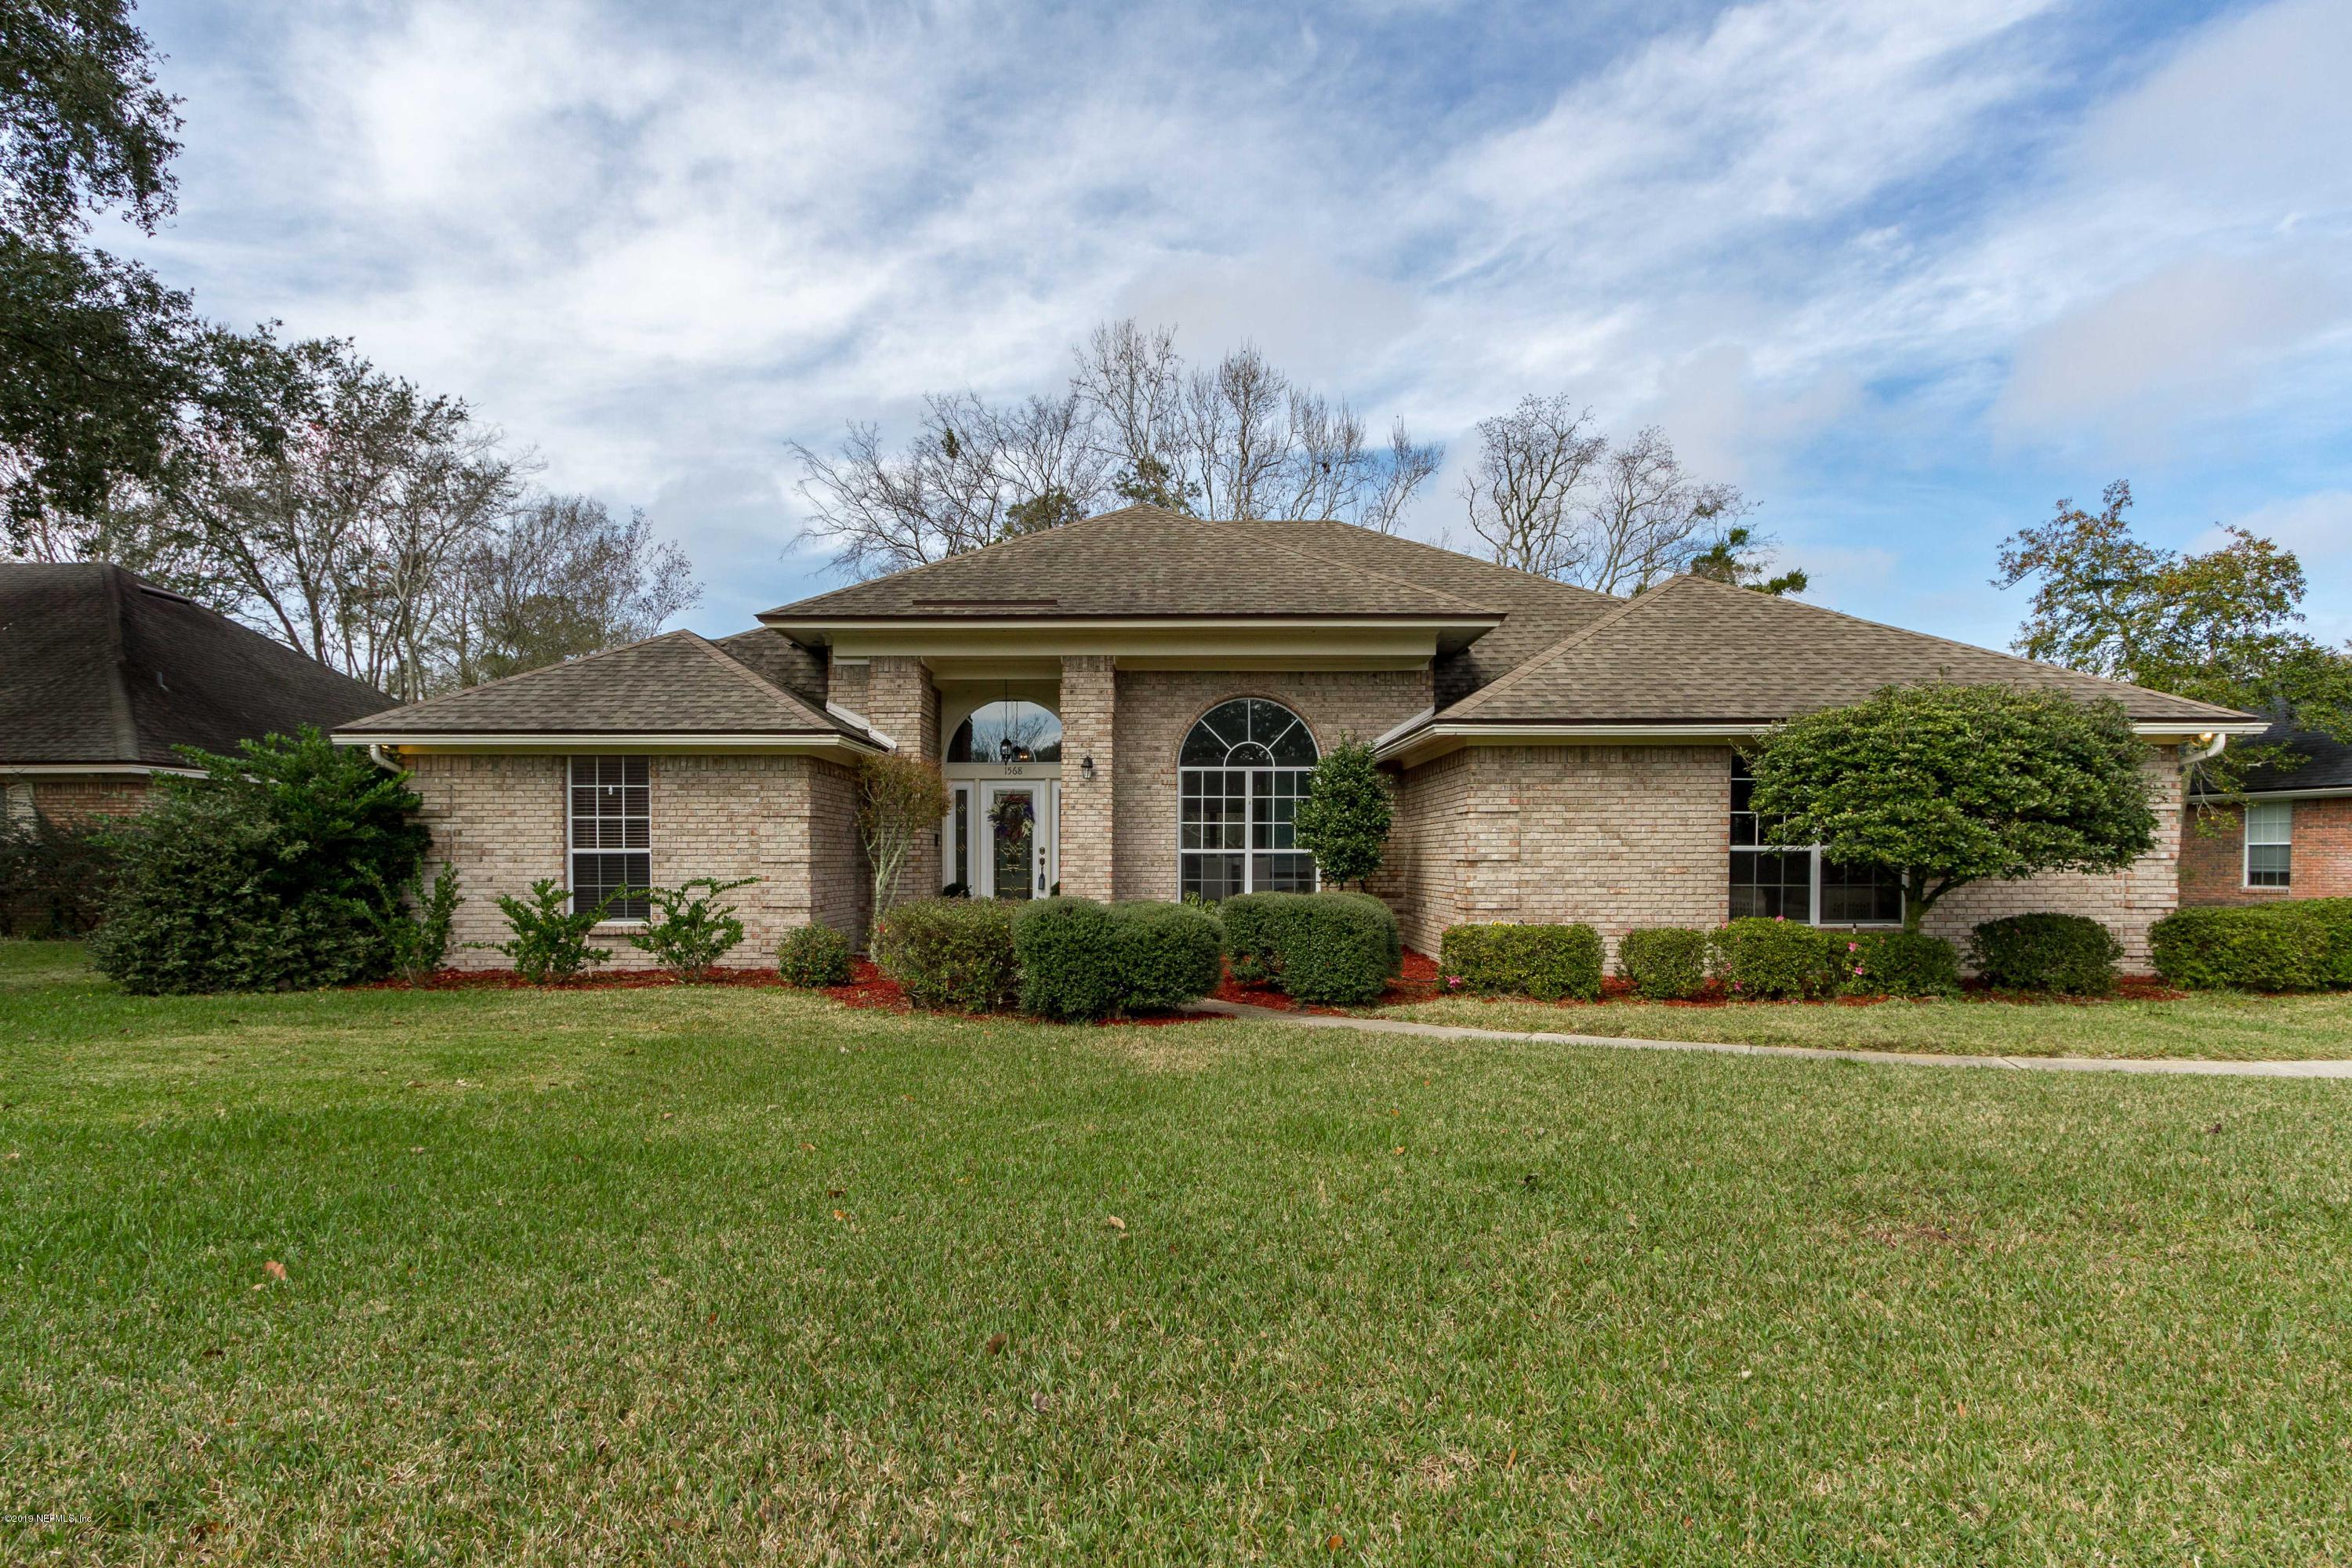 1568 CHAIN FERN, FLEMING ISLAND, FLORIDA 32003, 4 Bedrooms Bedrooms, ,2 BathroomsBathrooms,Residential - single family,For sale,CHAIN FERN,979715